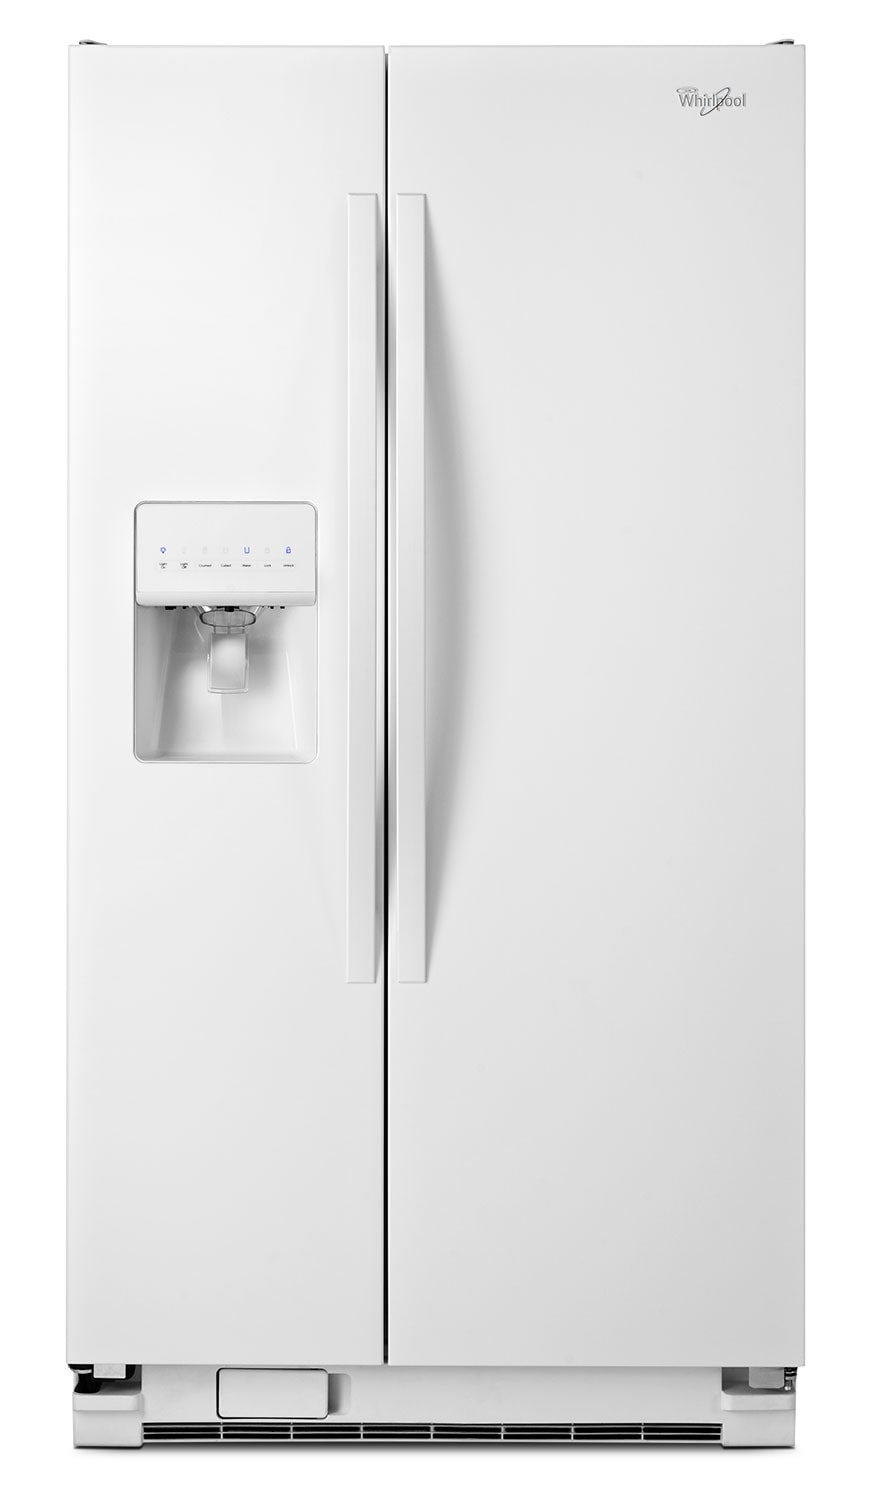 Whirlpool White Side-by-Side Refrigerator (24.5 Cu. Ft.) - WRS335FDDW